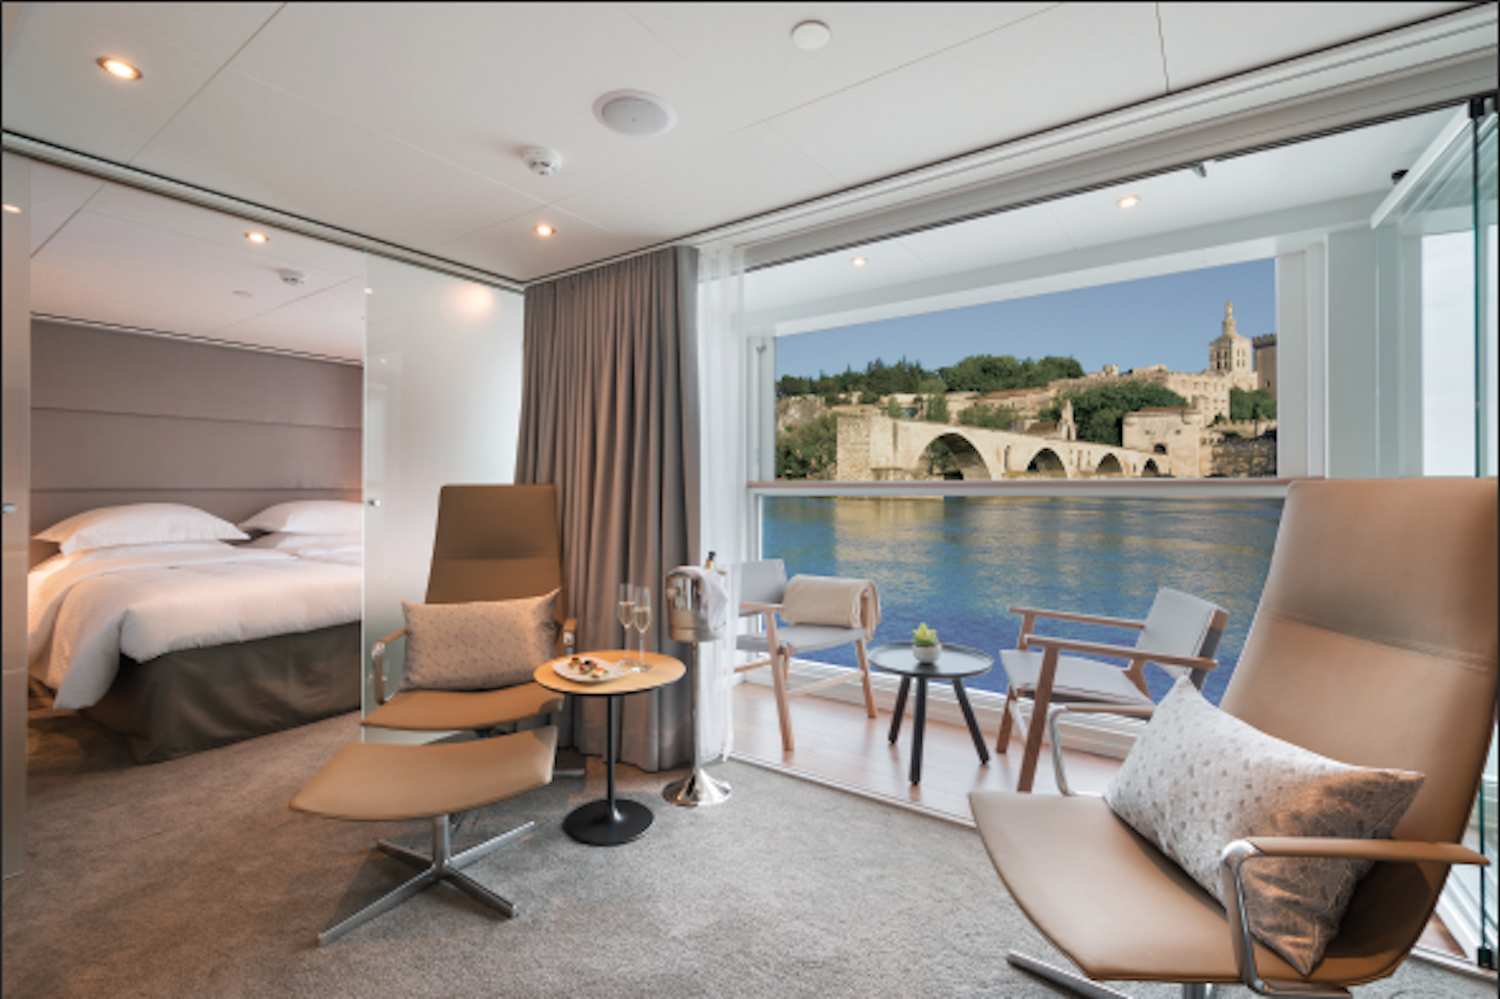 Emerald Waterways new Provence sailing for 2017 takes place aboard the company's newly built 138-passenger Emerald Liberte.